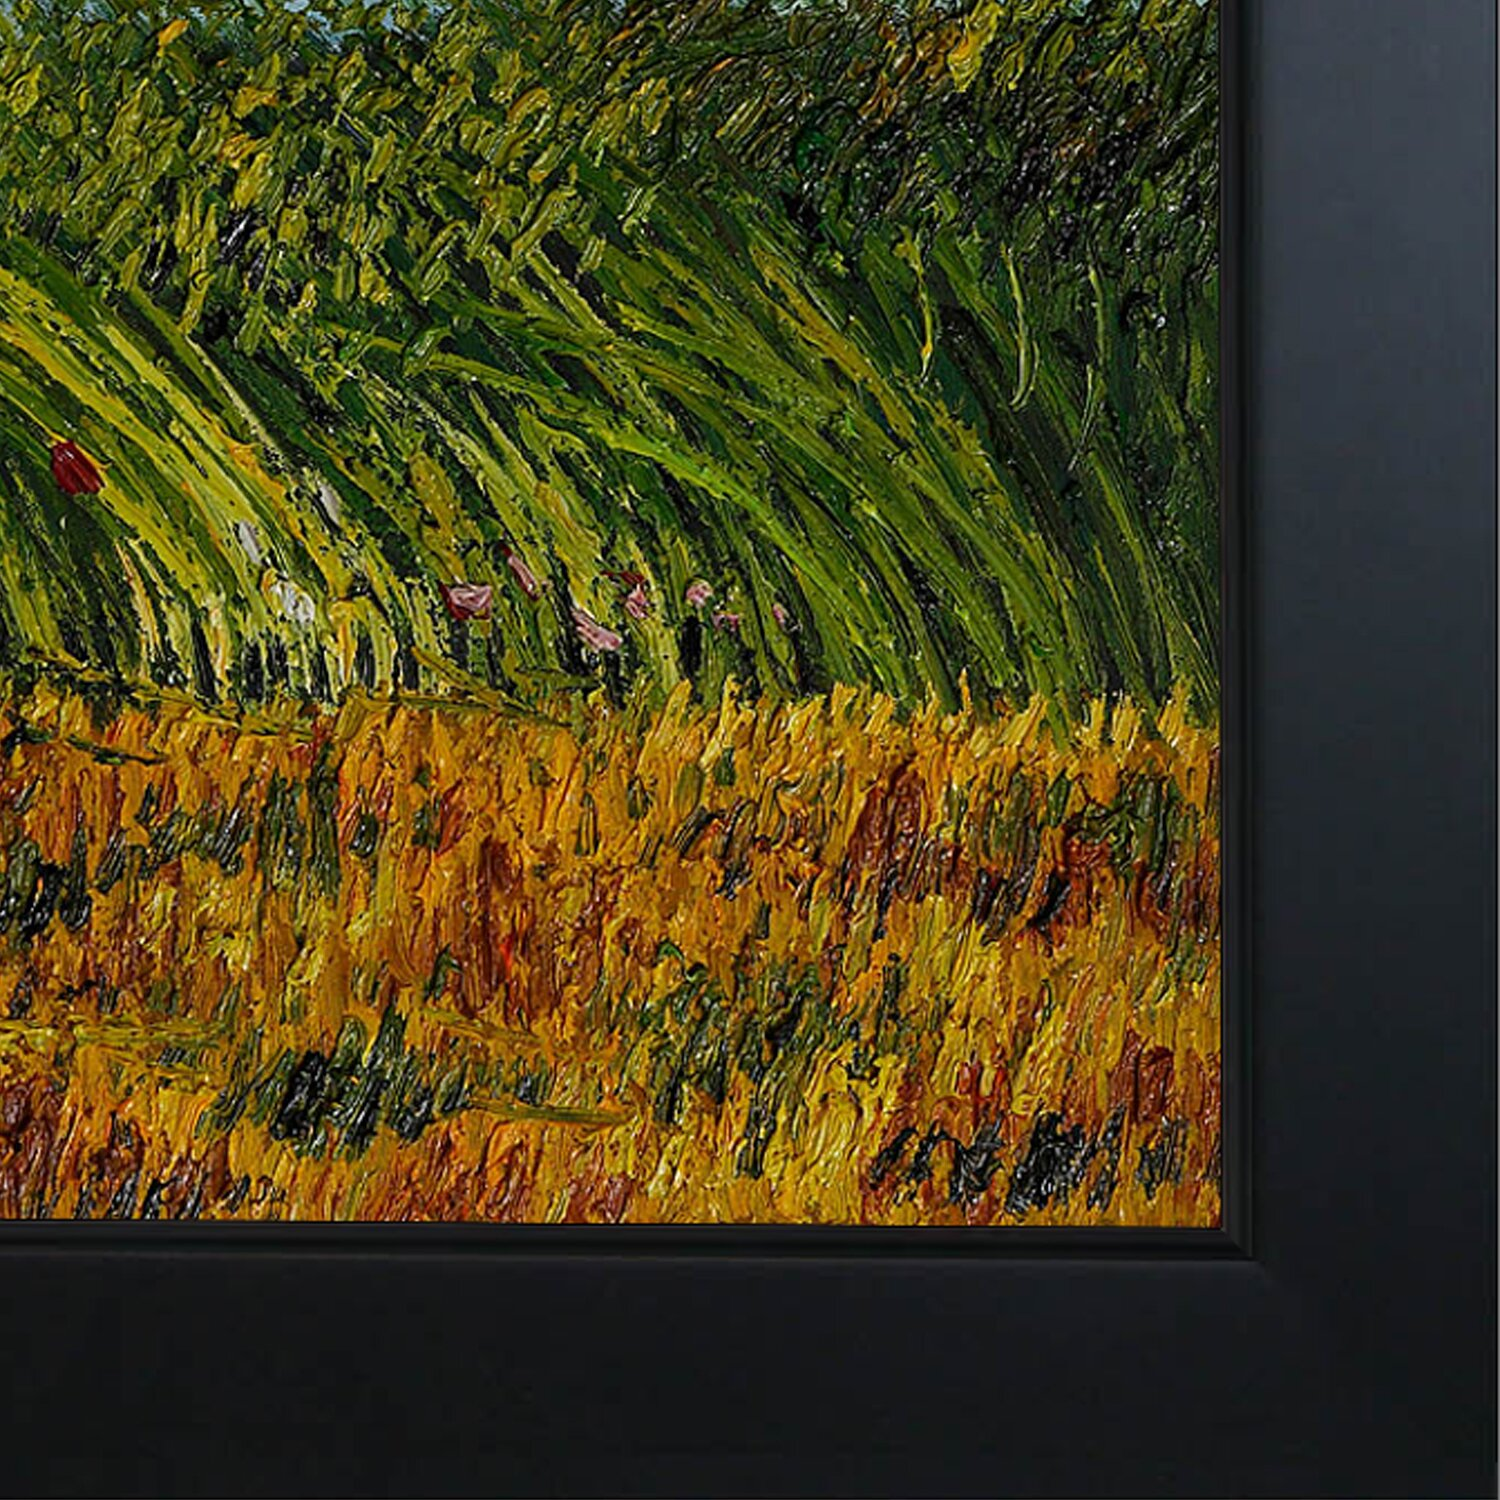 Wildon Home u00ae Edge of A Wheat Field with Poppies and A Lark by Vincent Van Gogh Framed Original ...